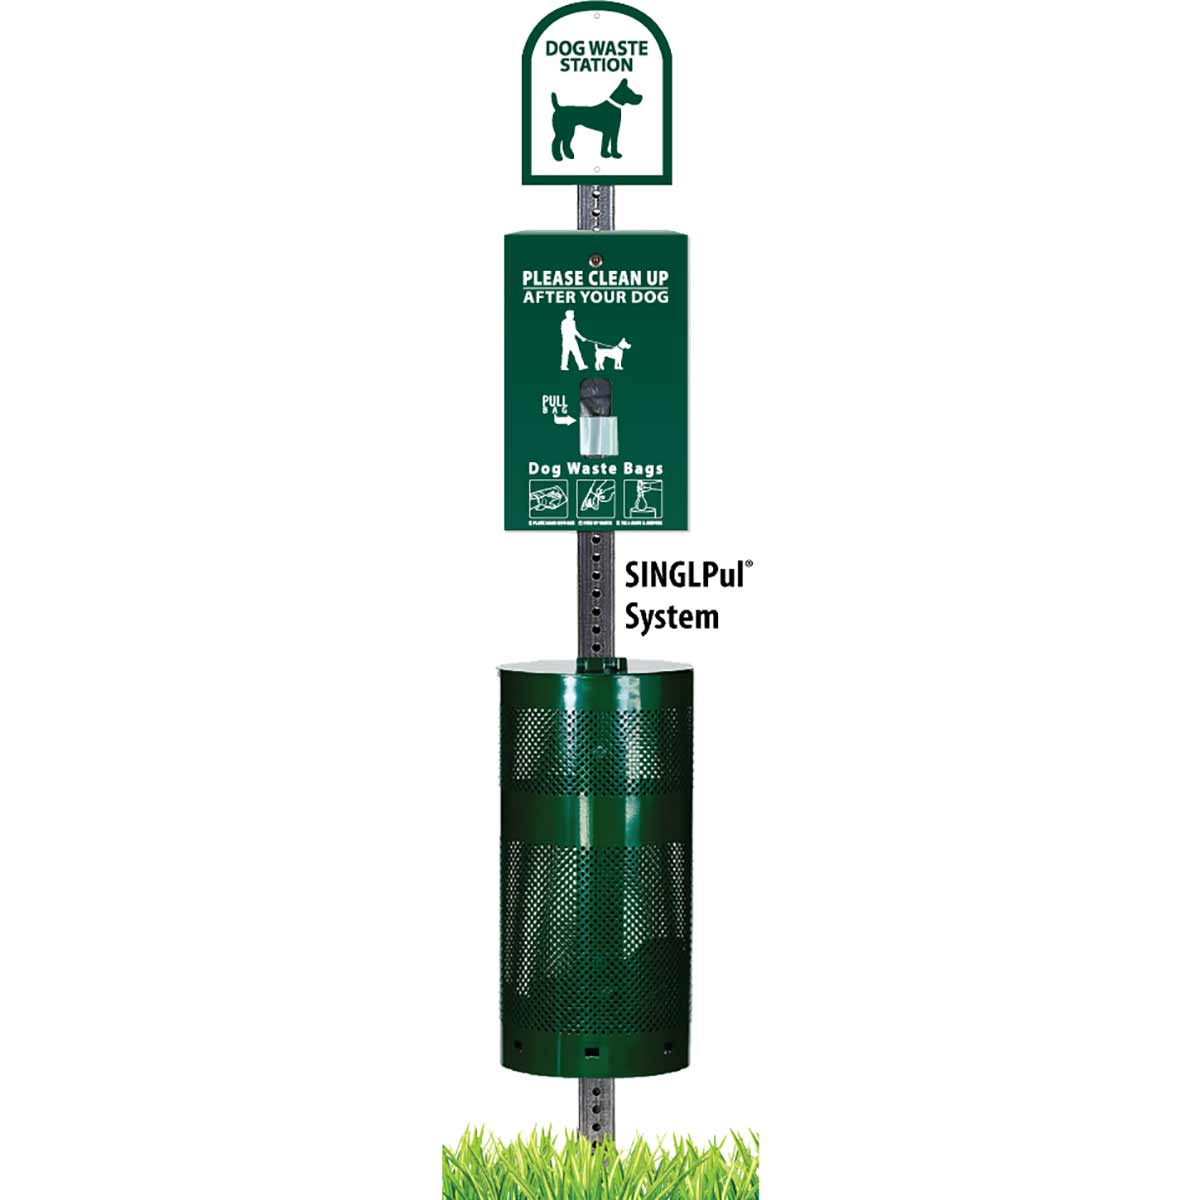 Green Sentry Singpul Dog Waste Bag Dispenser Station